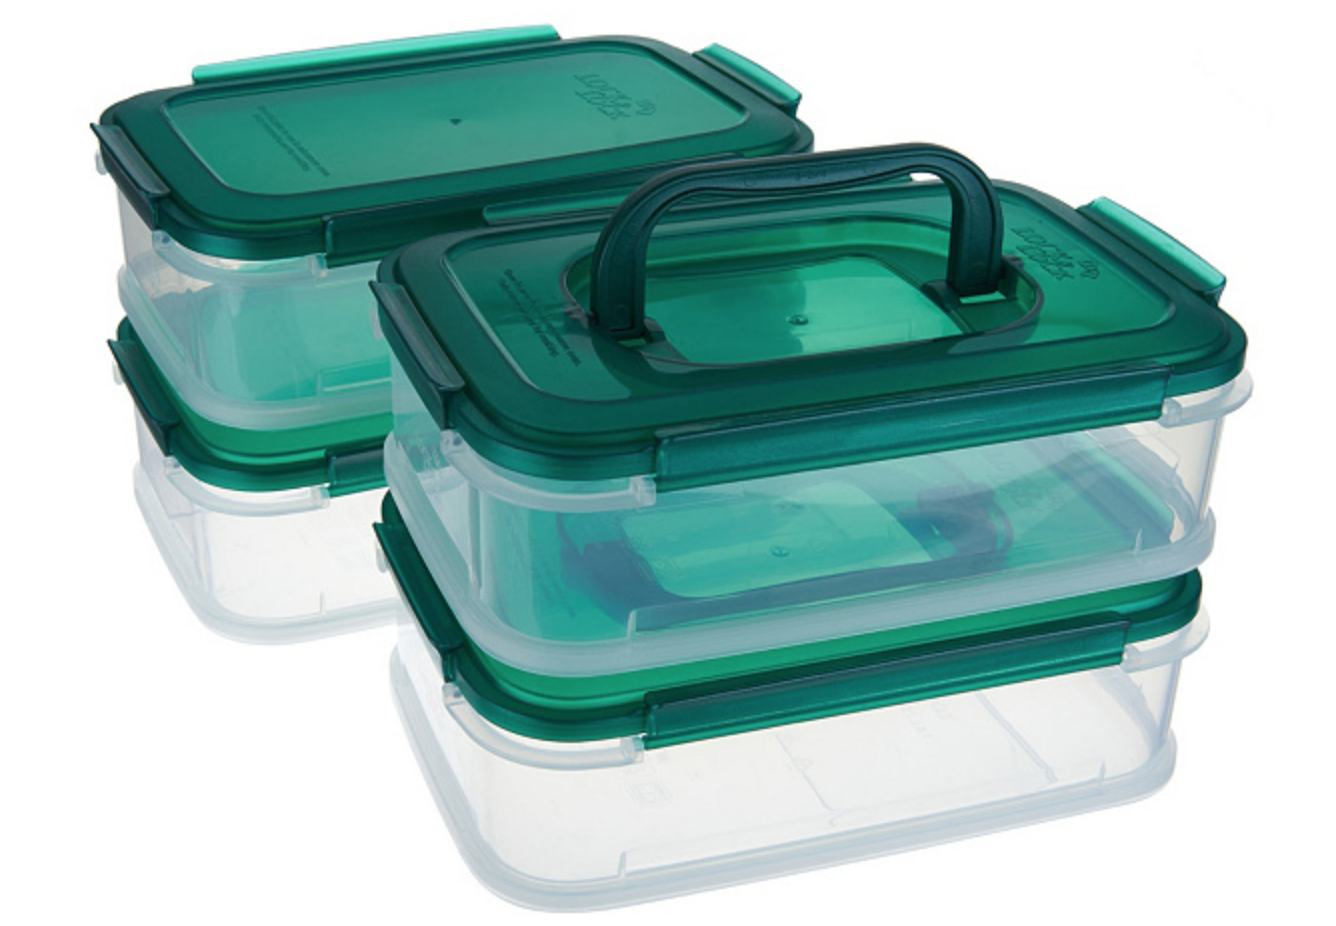 A stackable four-piece set with handles — and it's dishwasher safe and easy to clean.